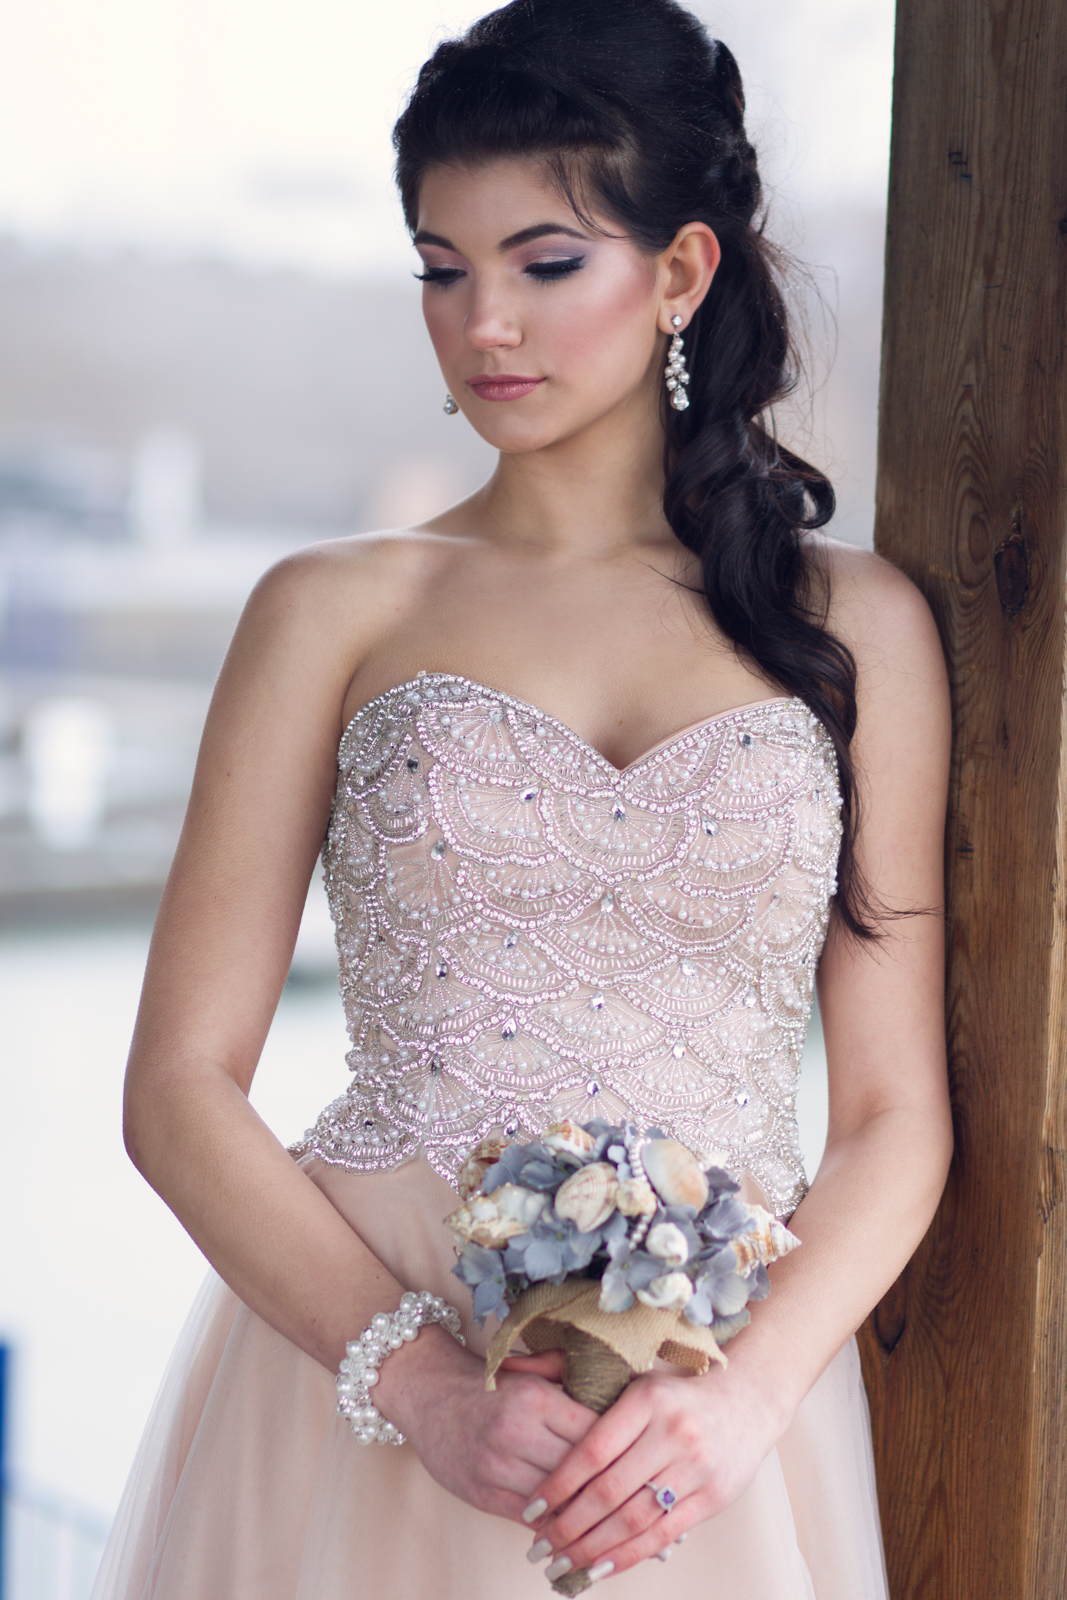 Honor Beauty, Vineyard Bride, The Swish List, Bridal Makeup, Wedding Hair and Makeup, Niagara Hair and Makeup,